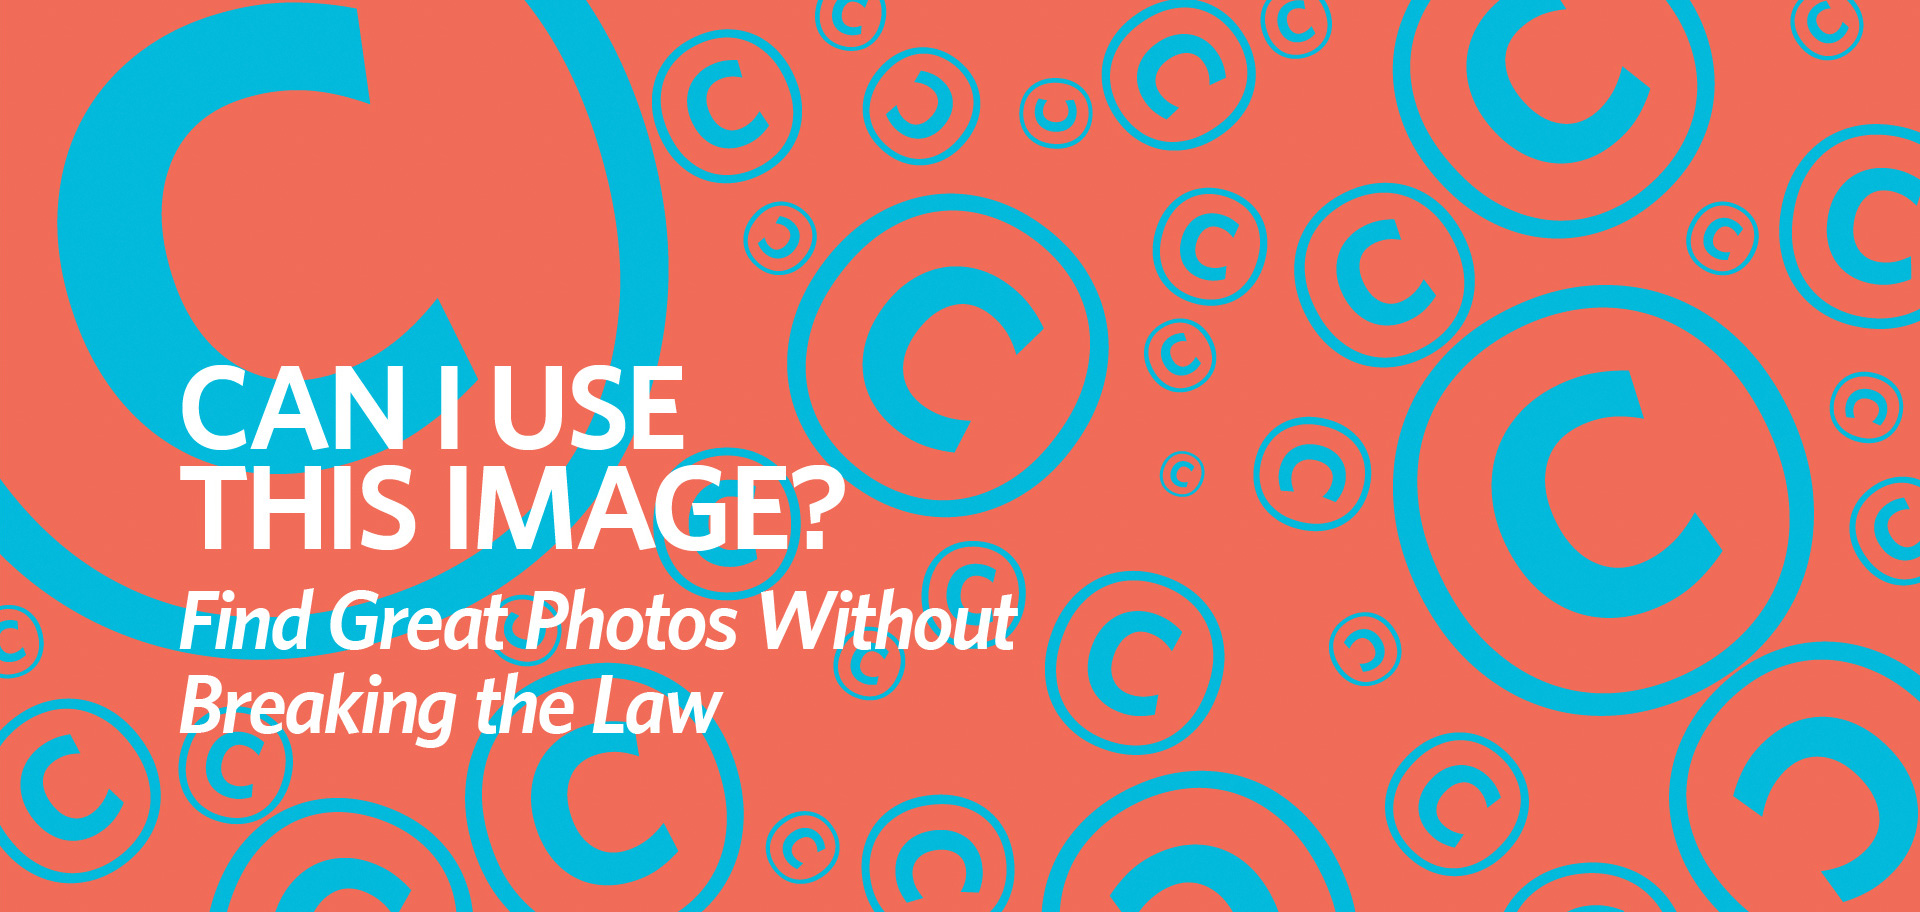 Can I use this image? Find Great Photos Without Breaking the Law by Kettle Fire Creative. Copyright law and photos online, fair use, free stock photos can i use this image Can I use this image? Find Great Photos Without Breaking the Law photo use fi